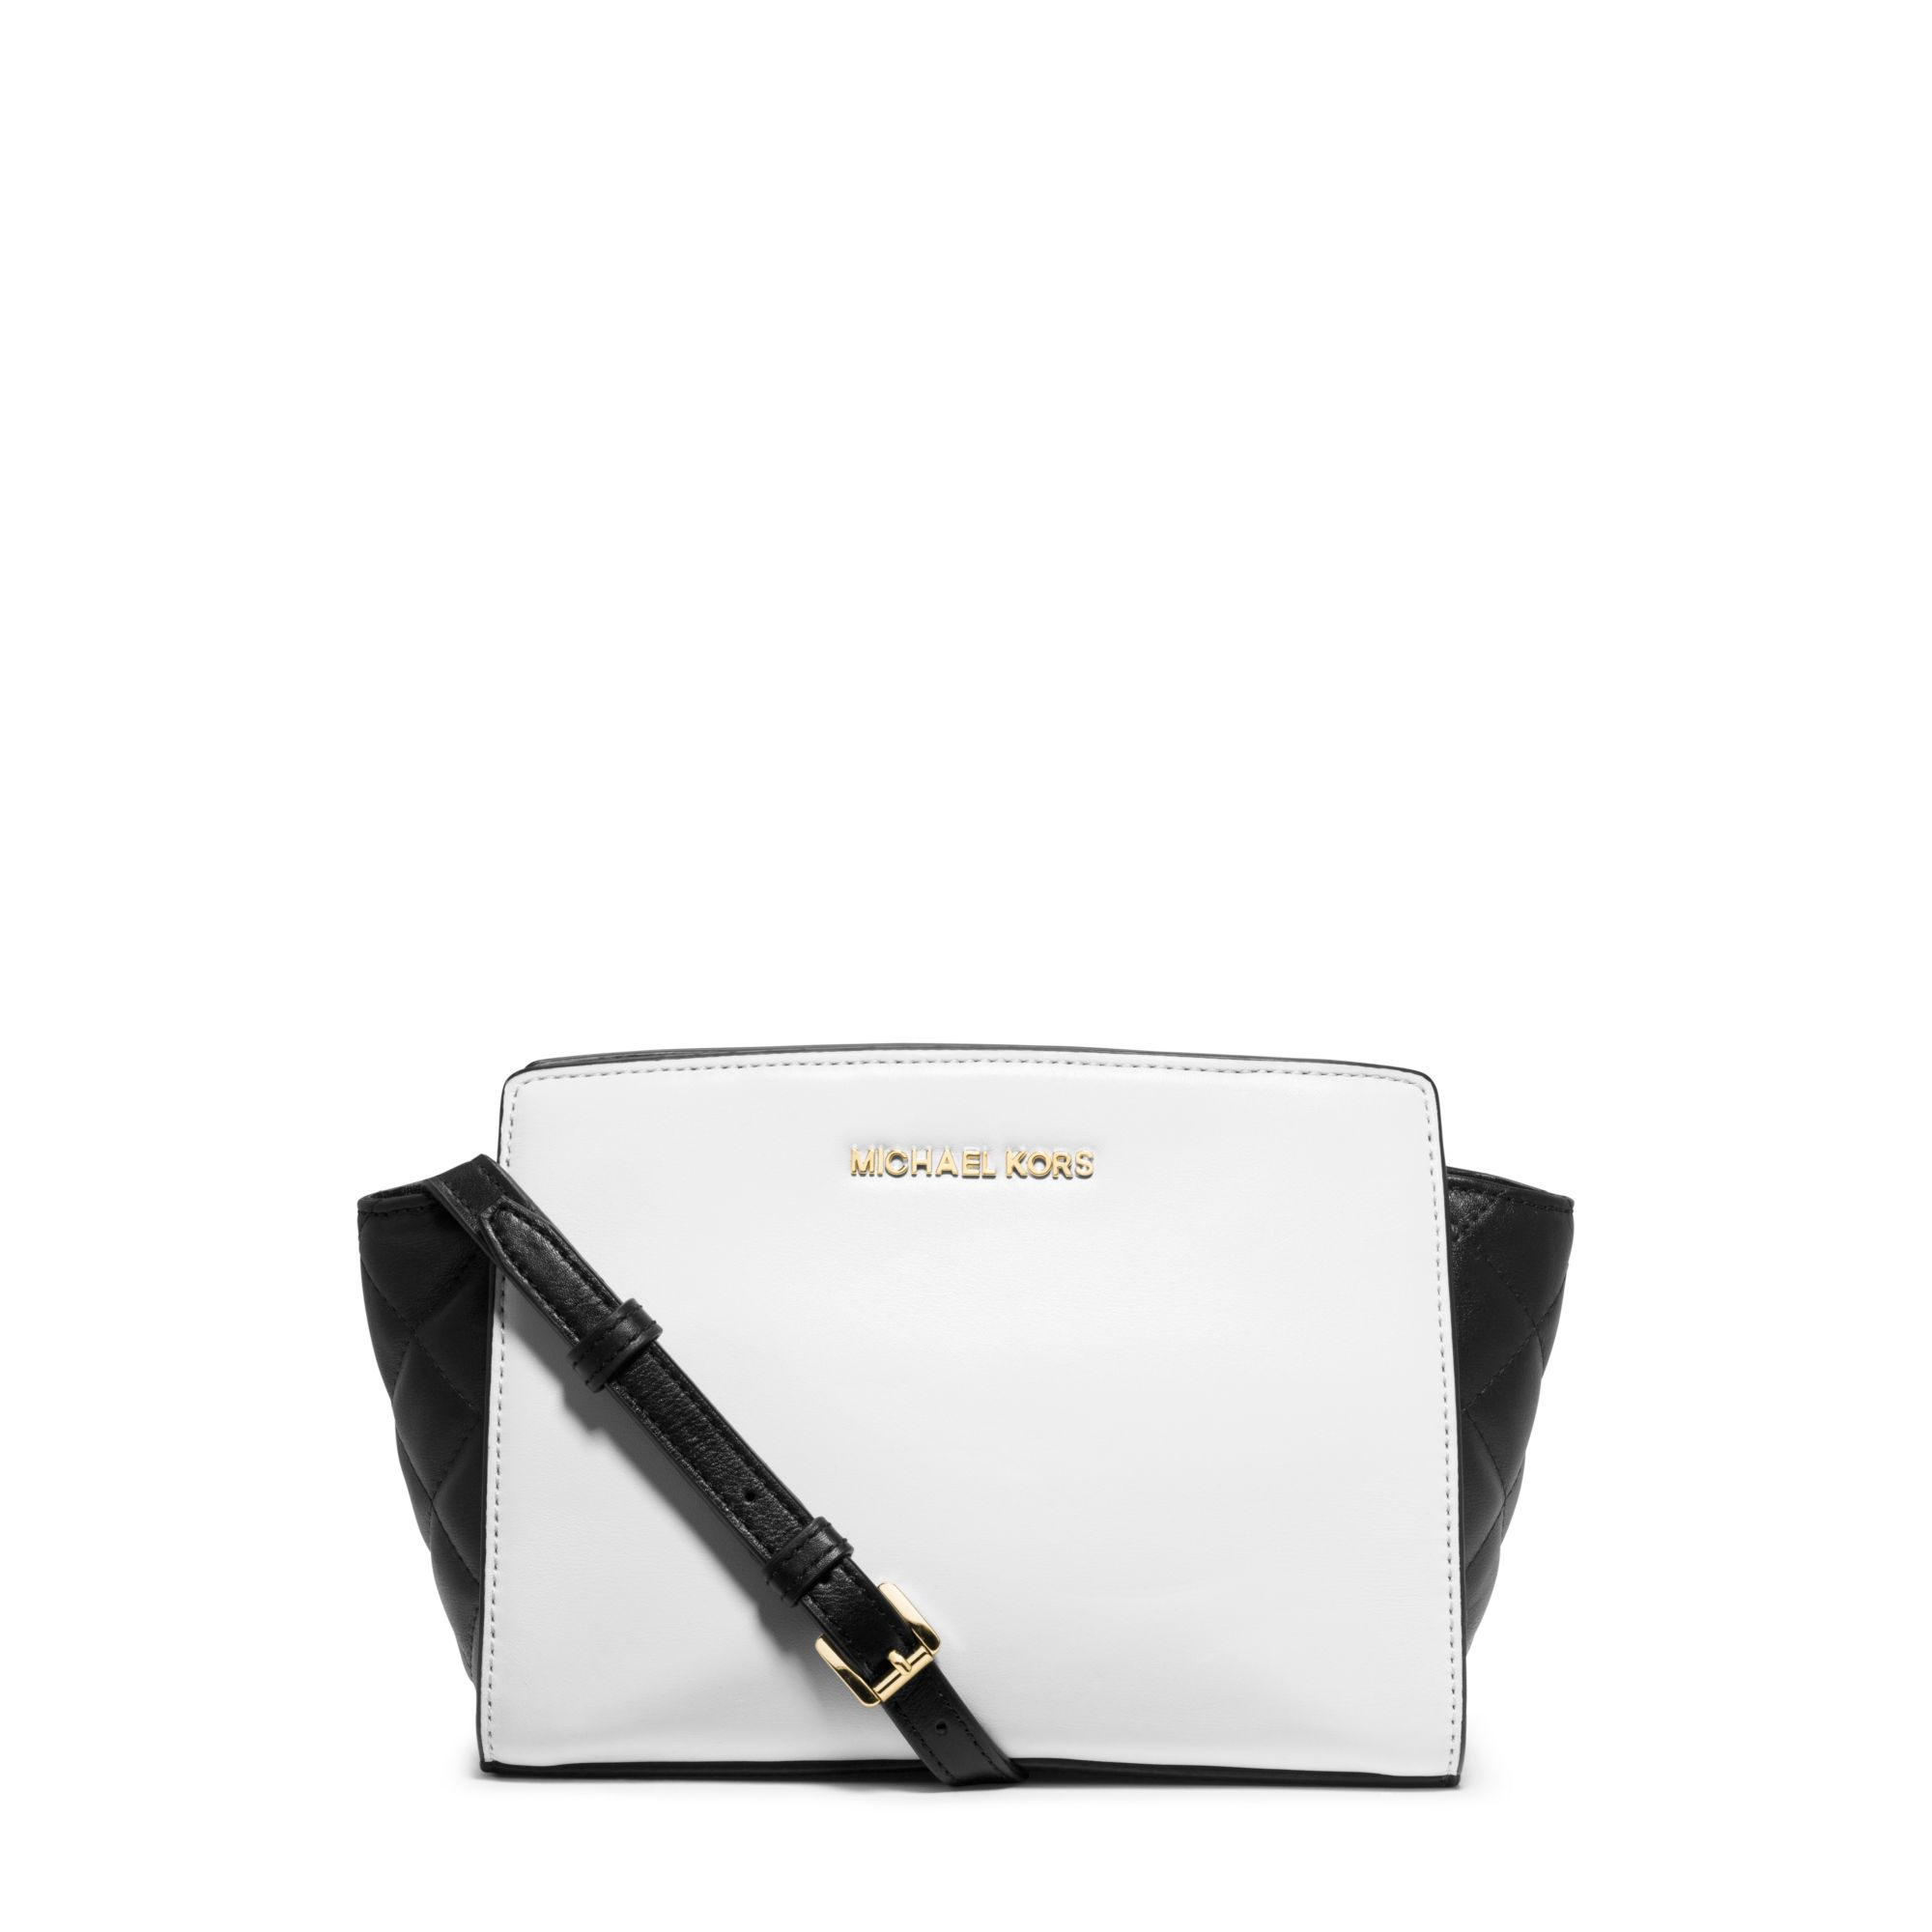 a6492cb6aba4ad Michael Kors Selma Medium Color-block Leather Messenger in White - Lyst